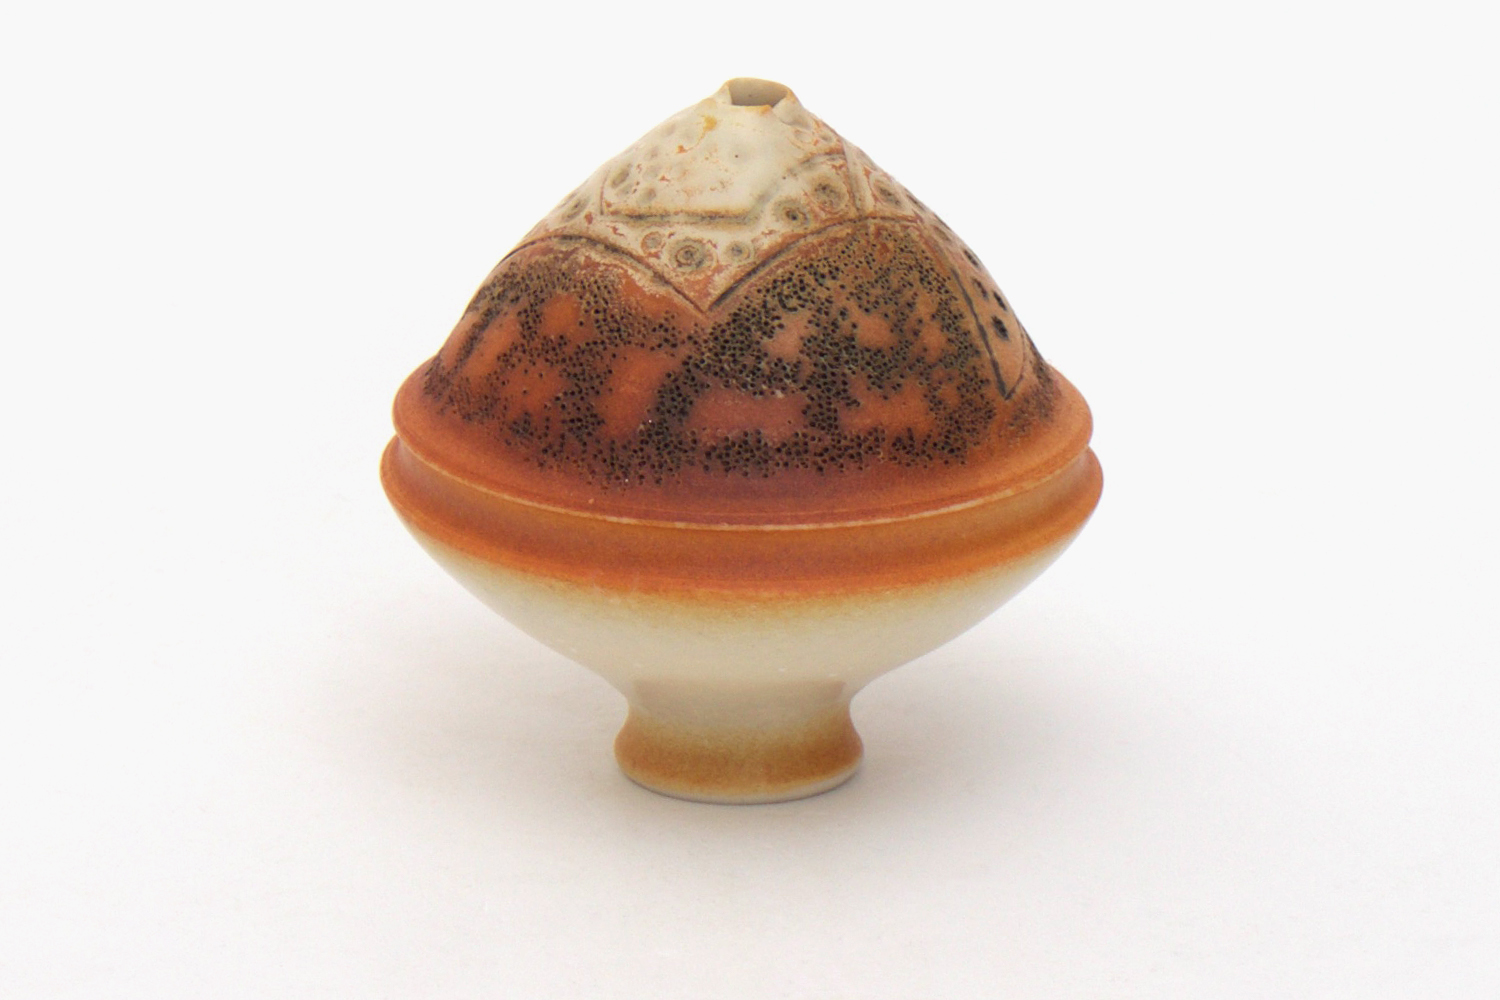 Geoffrey Swindell Miniature Ceramic Form 03